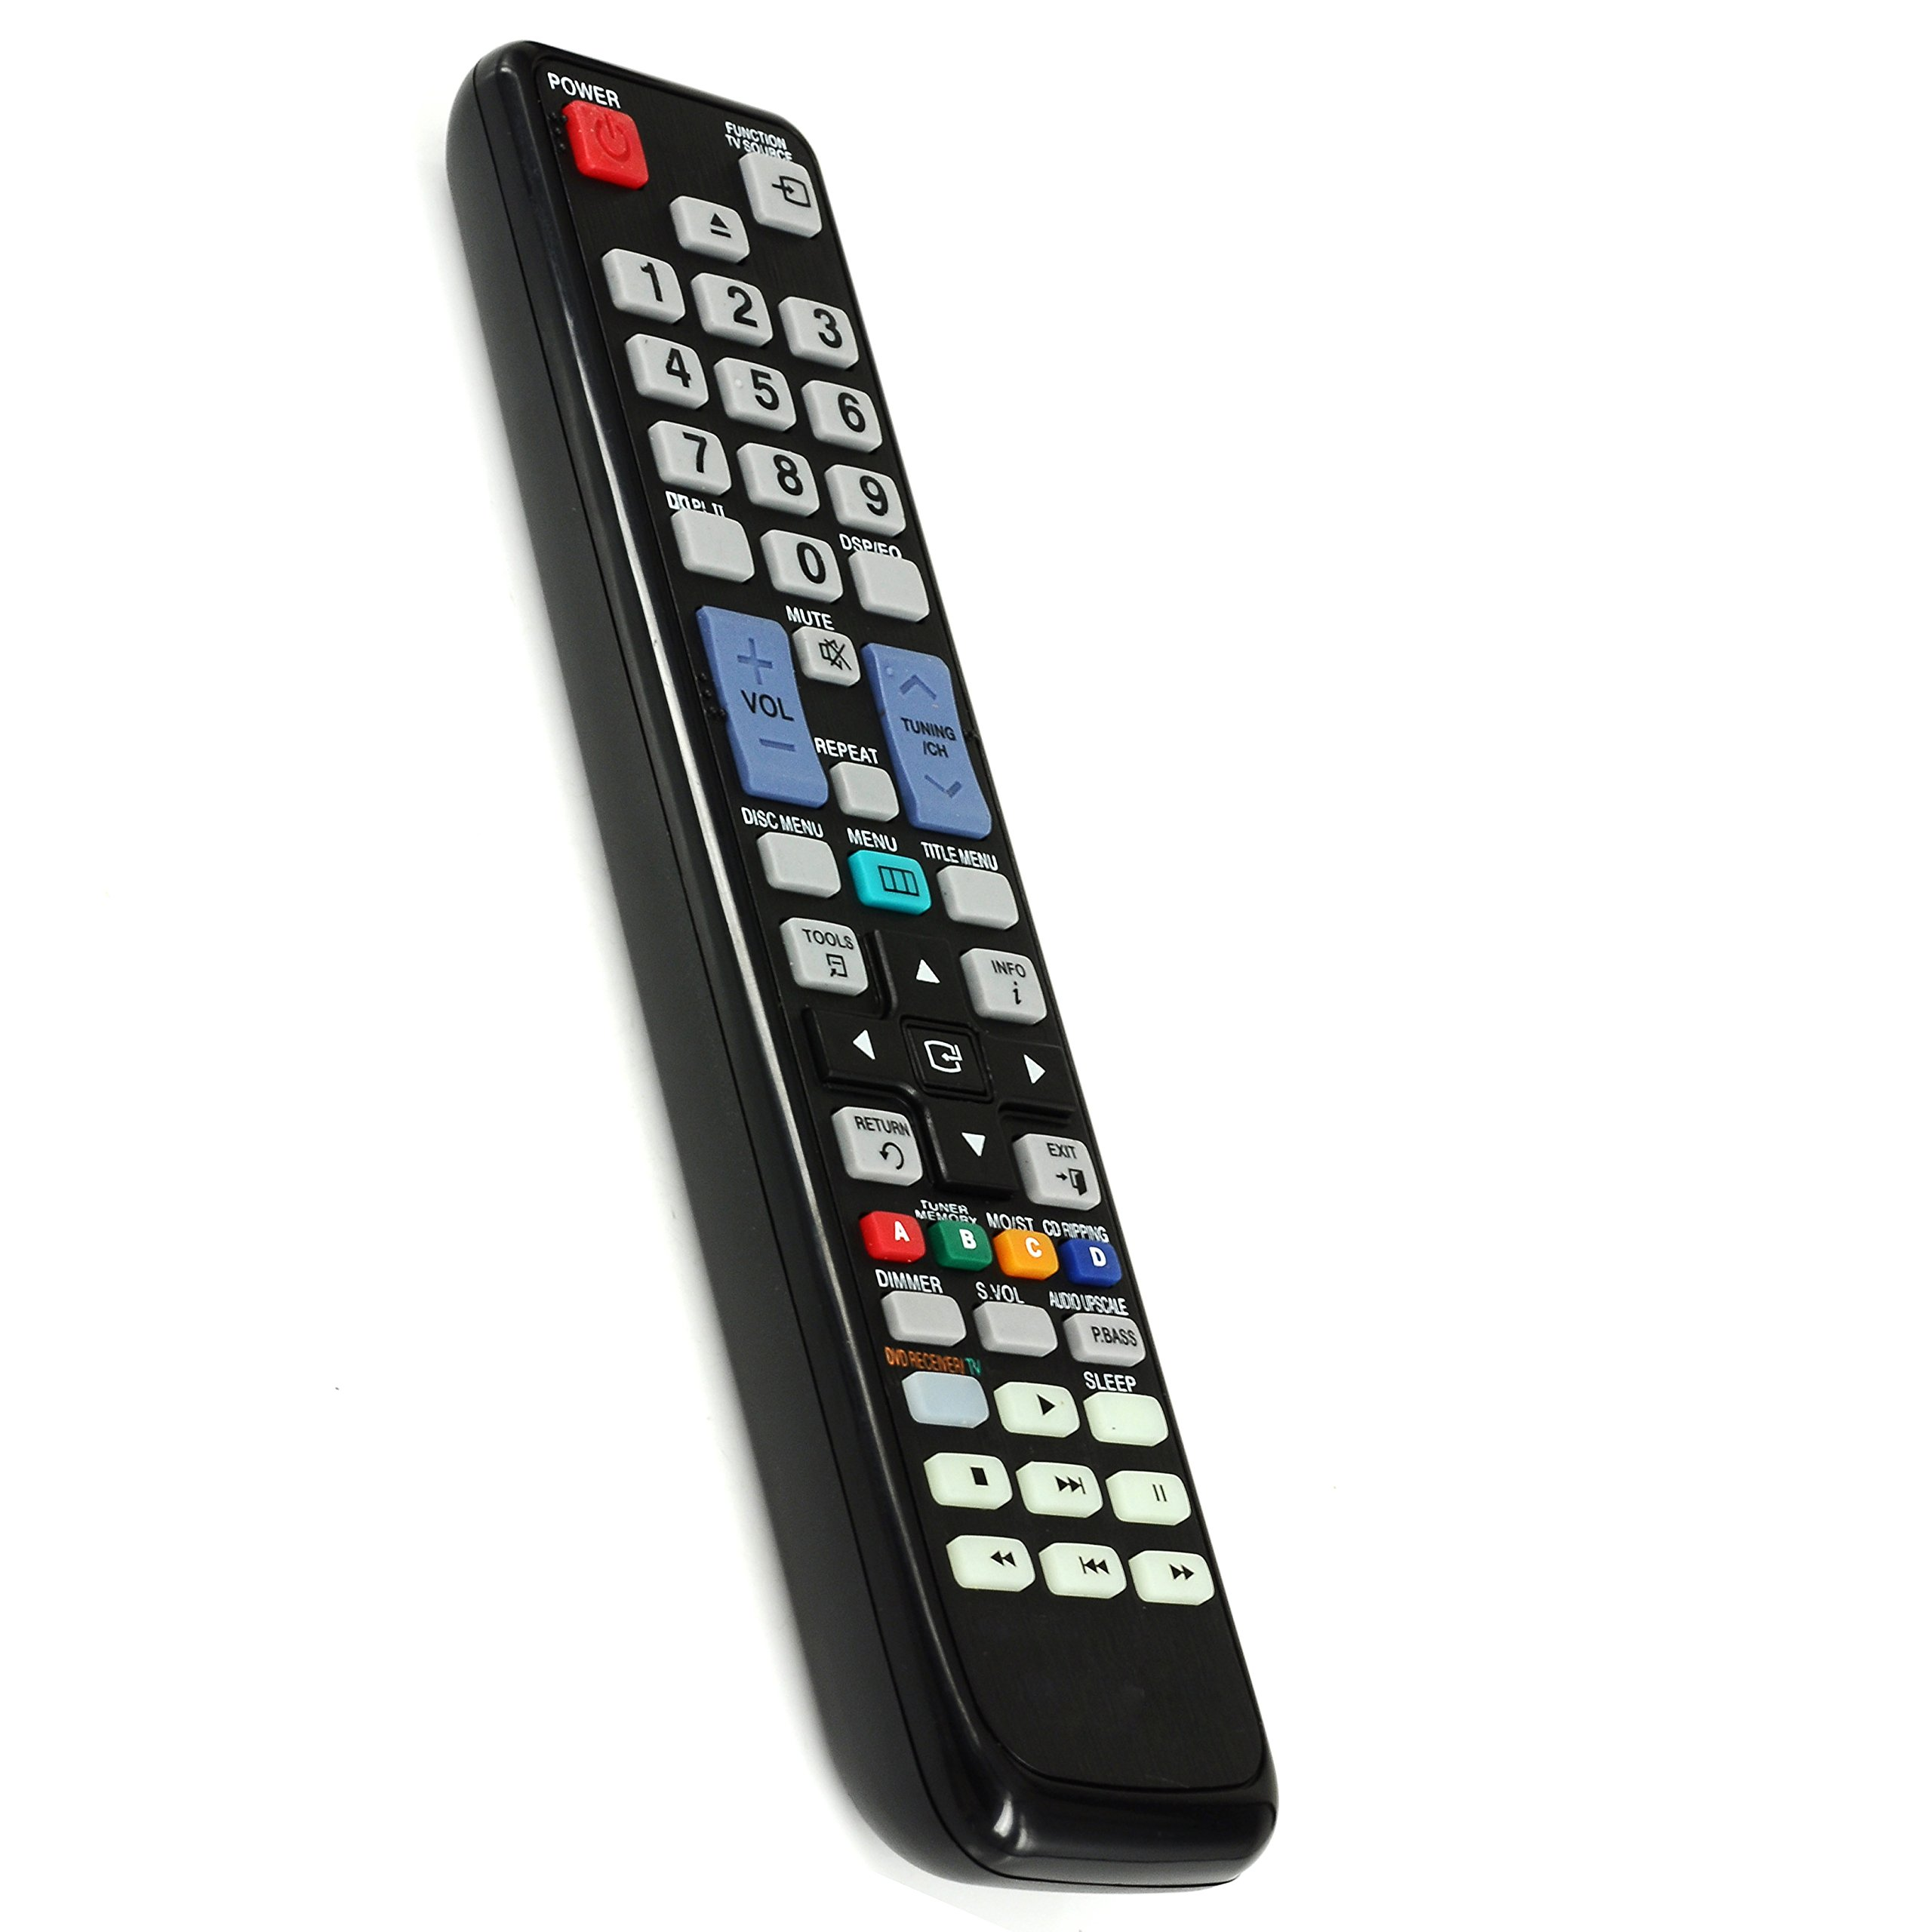 Universal Remote for Samsung Home Theater System HTC550 HT-C550 HT-C550/XAA HT-C650W BD-P1400 BD-UP5000 HT-BD3252 HT-C5500/XAA HT-P1200 BD-P1000 HTP38 HT-P38 HTQ70 HT-Q70 HTX50 HT-X50